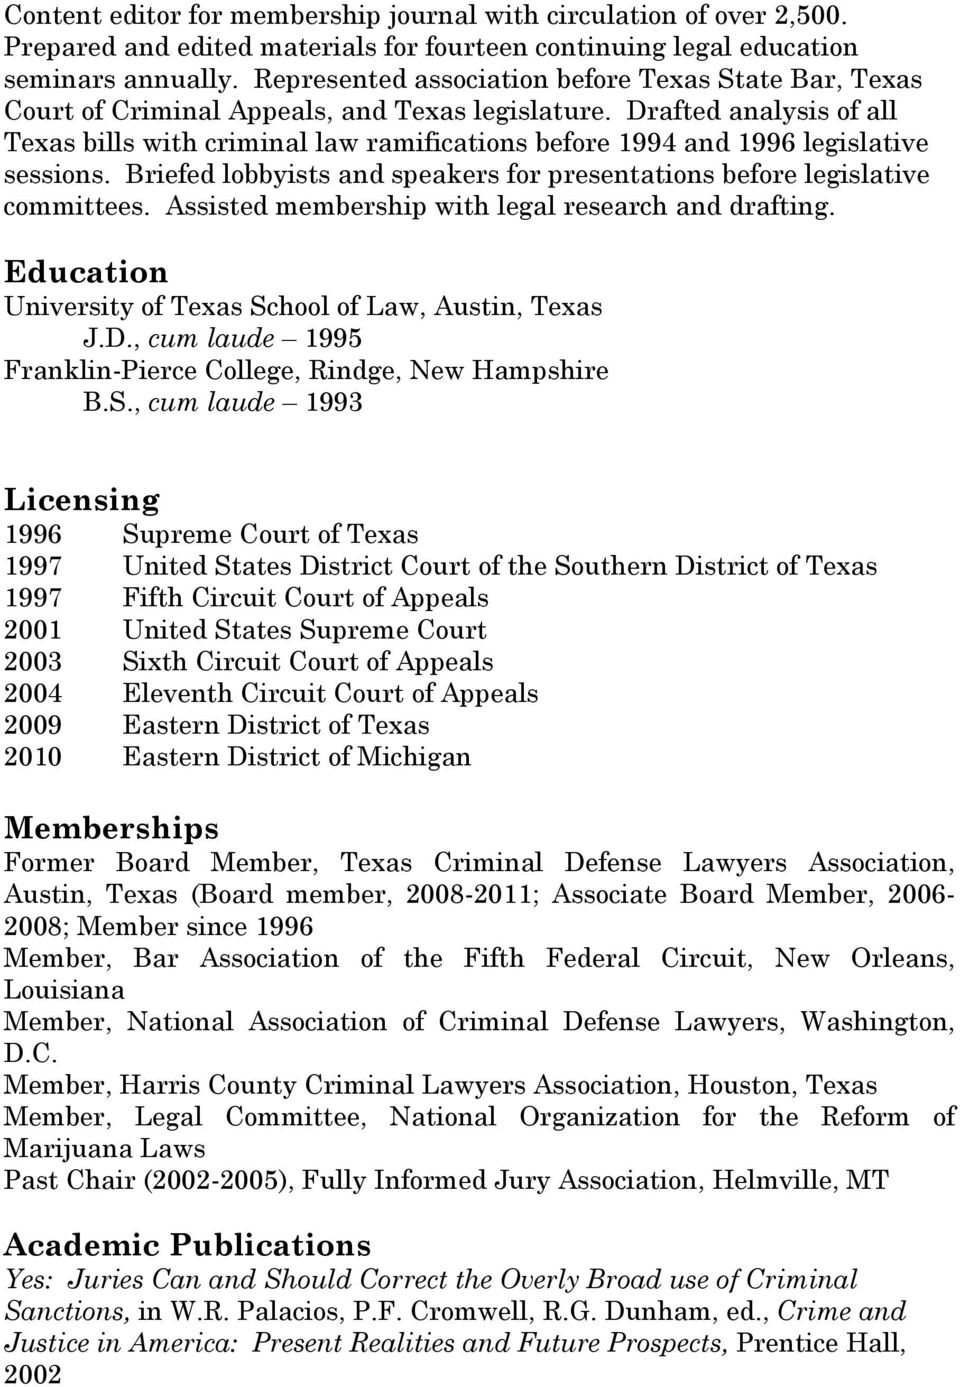 Drafted analysis of all Texas bills with criminal law ramifications before 1994 and 1996 legislative sessions. Briefed lobbyists and speakers for presentations before legislative committees.